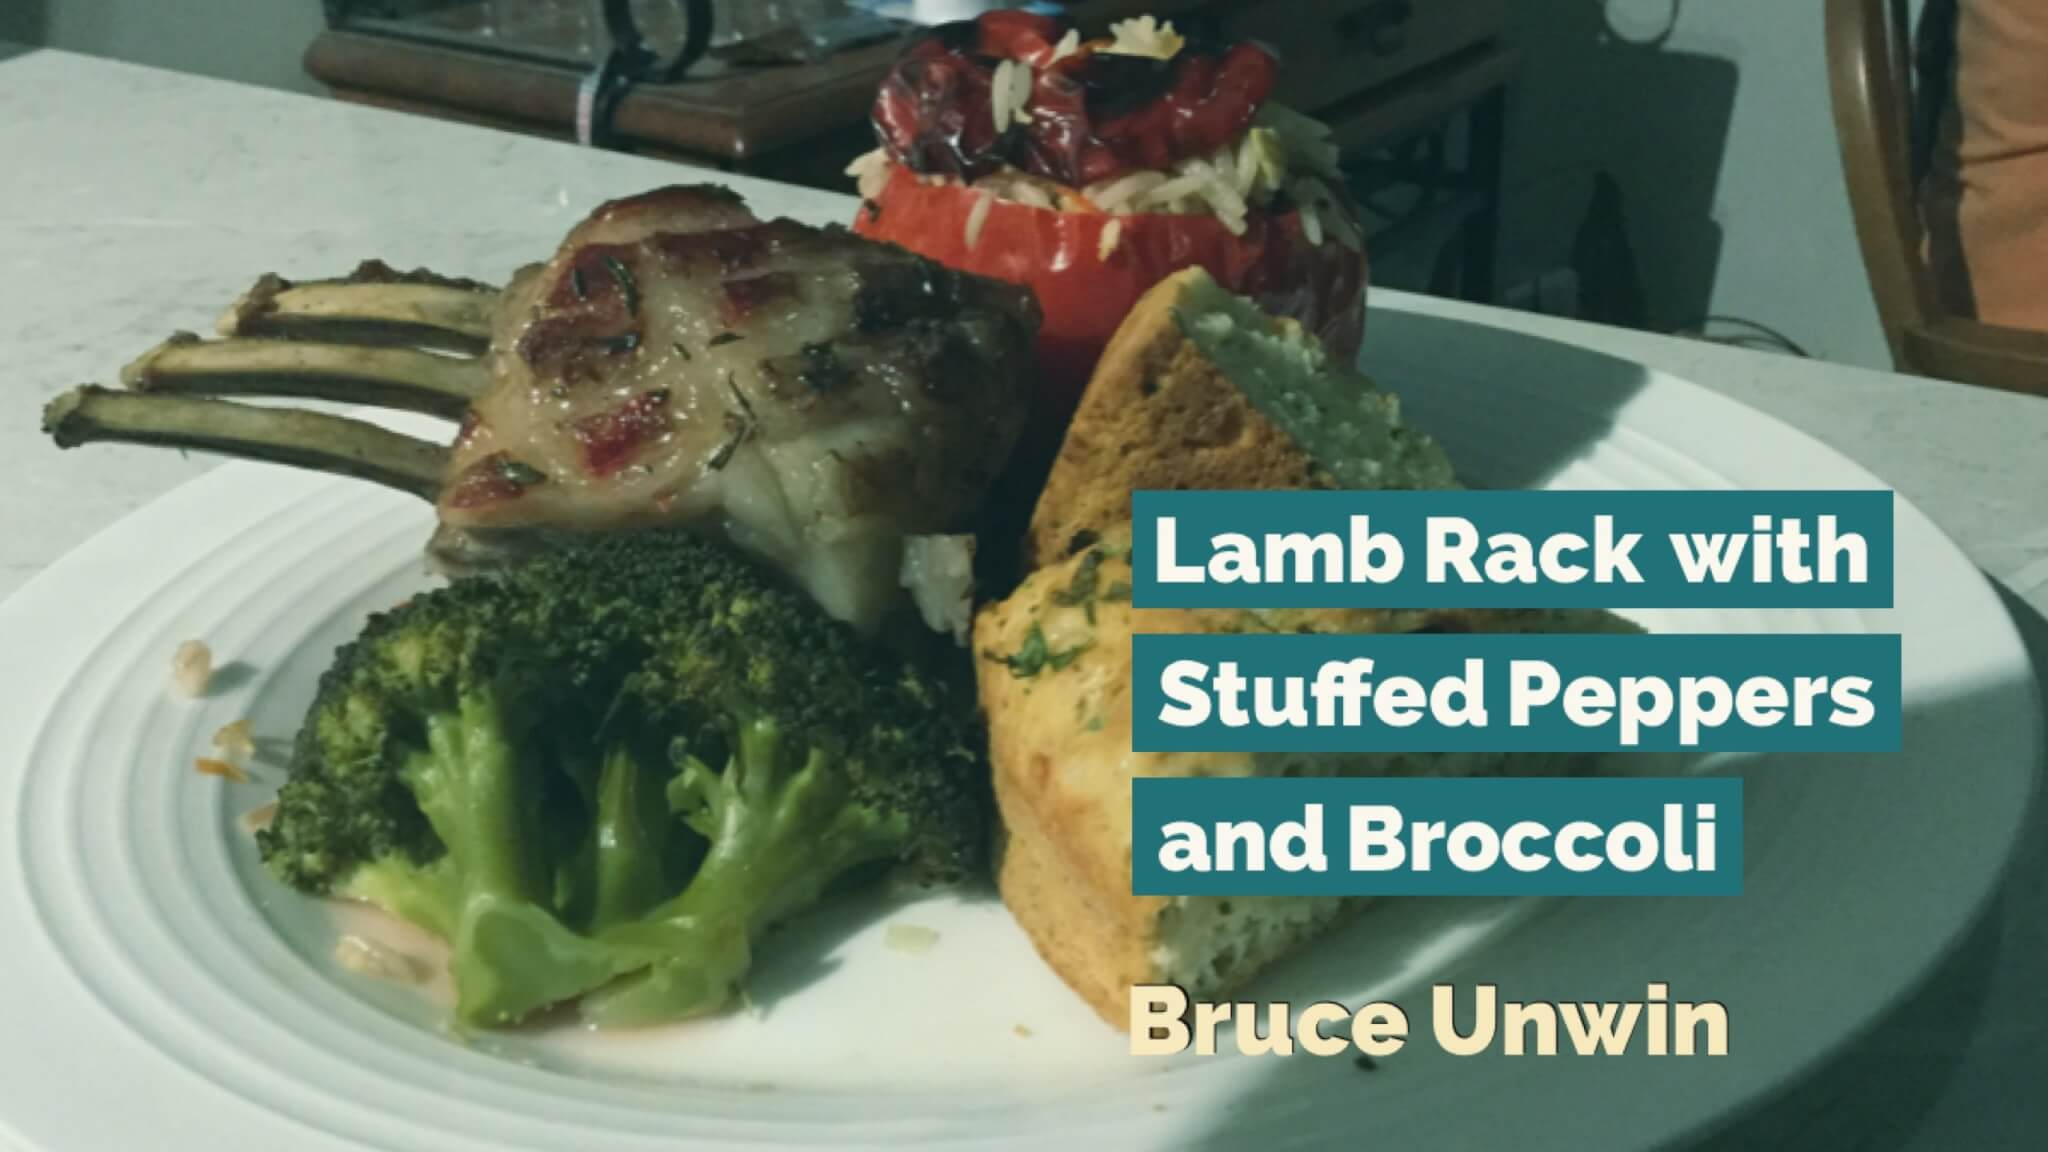 Lamb Rack with Stuffed Peppers and Broccoli | Bruce Unwin